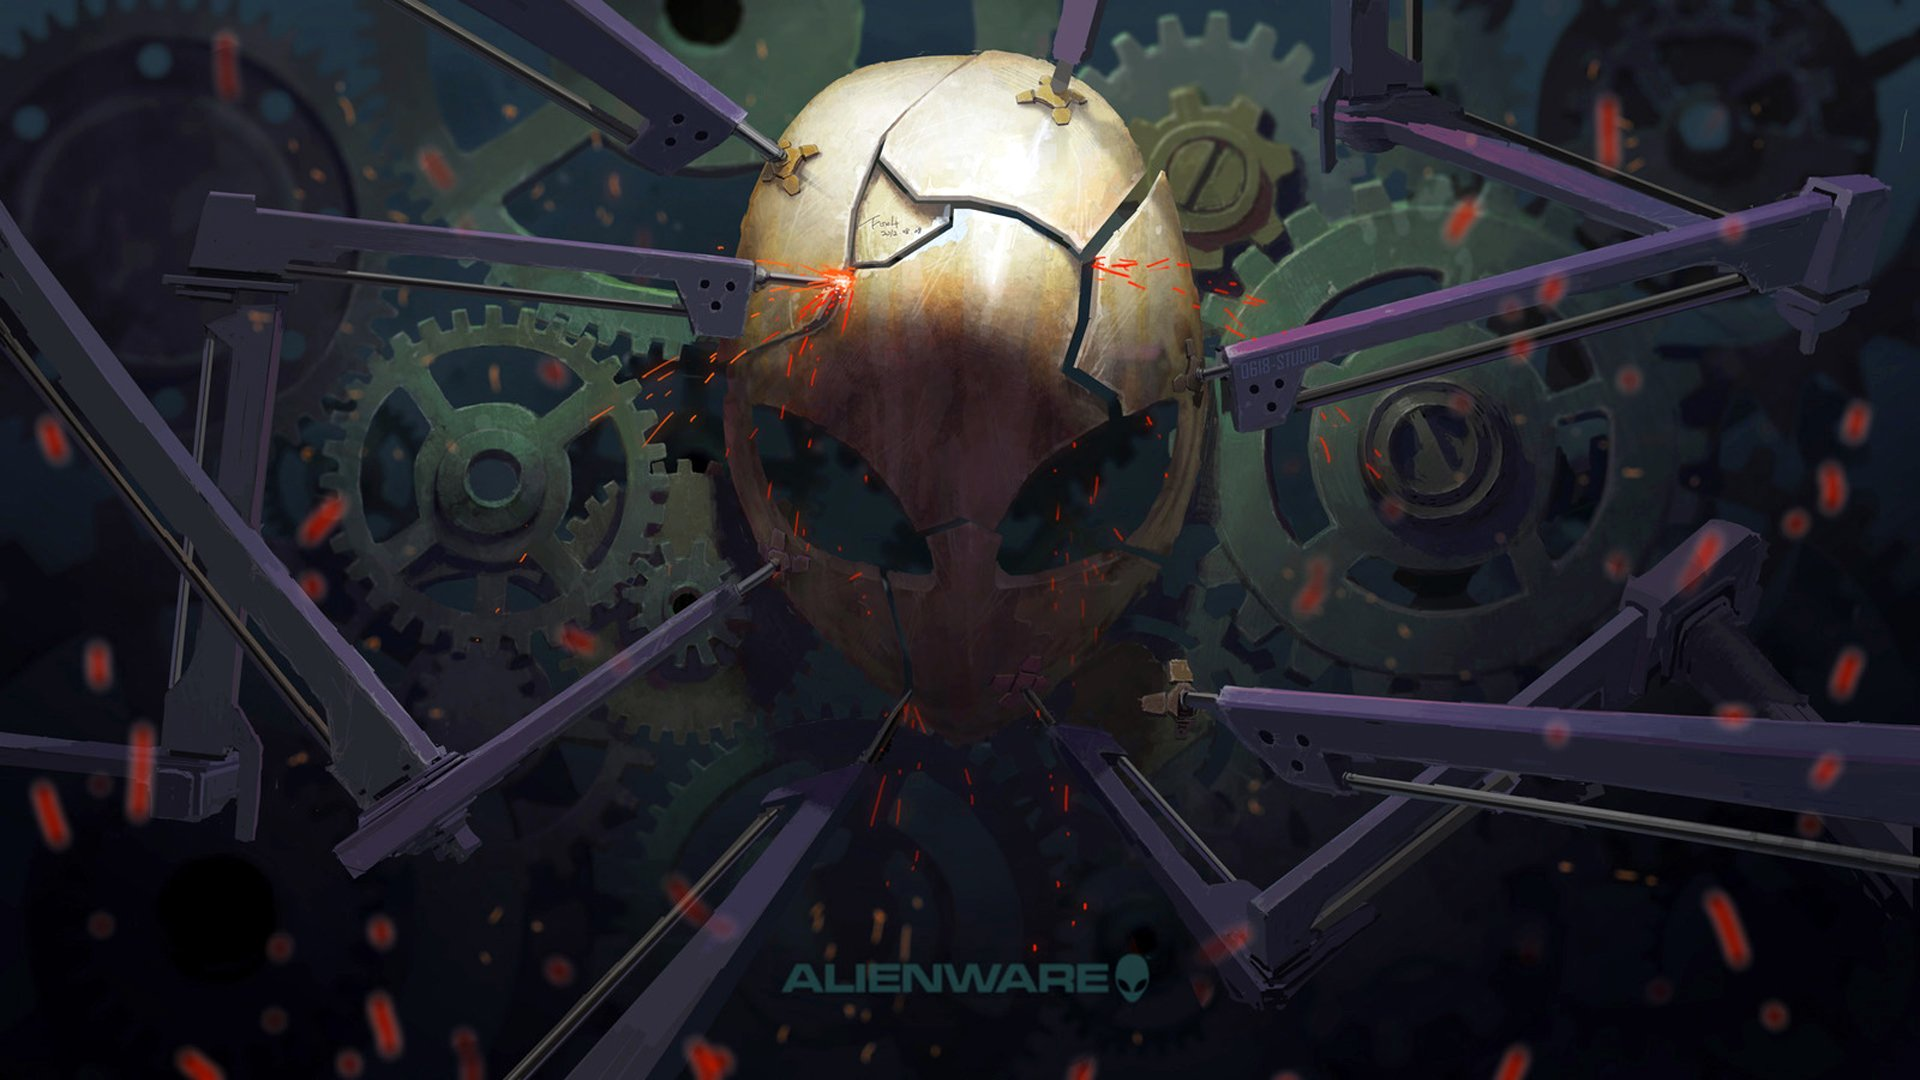 alienware broken mask cool logo 1920x1080 1080p wallpaper compatible 1920x1080